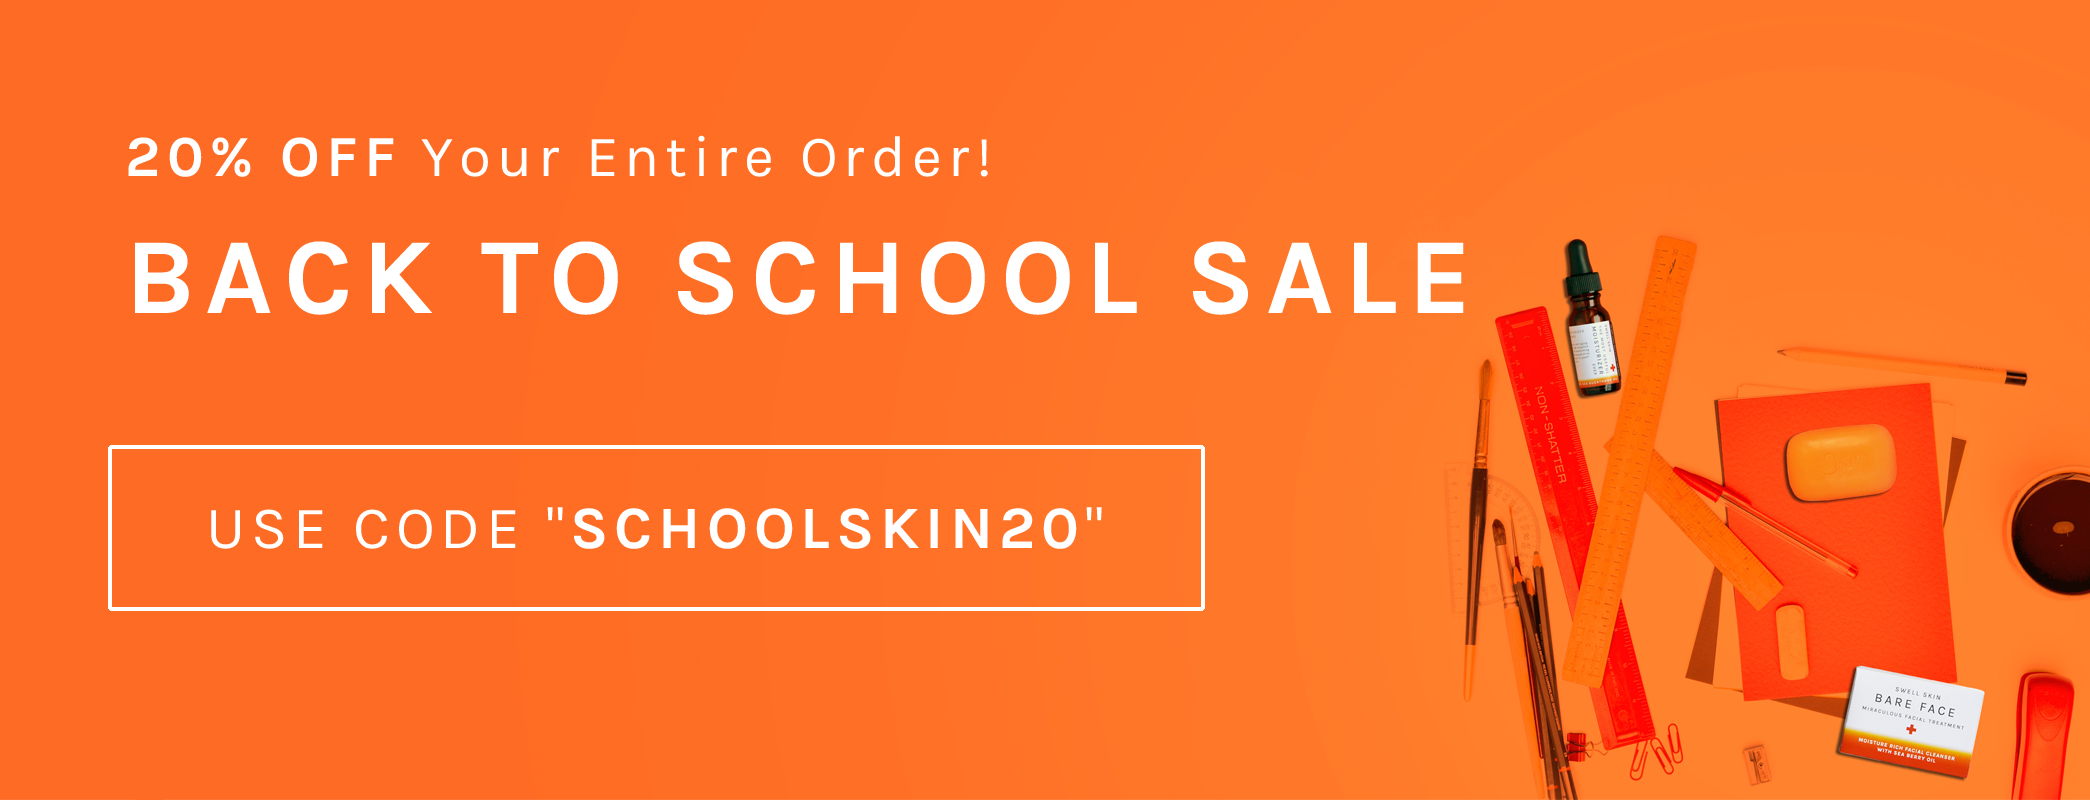 Swell Skin Back To School Sale 20% Off Weekend